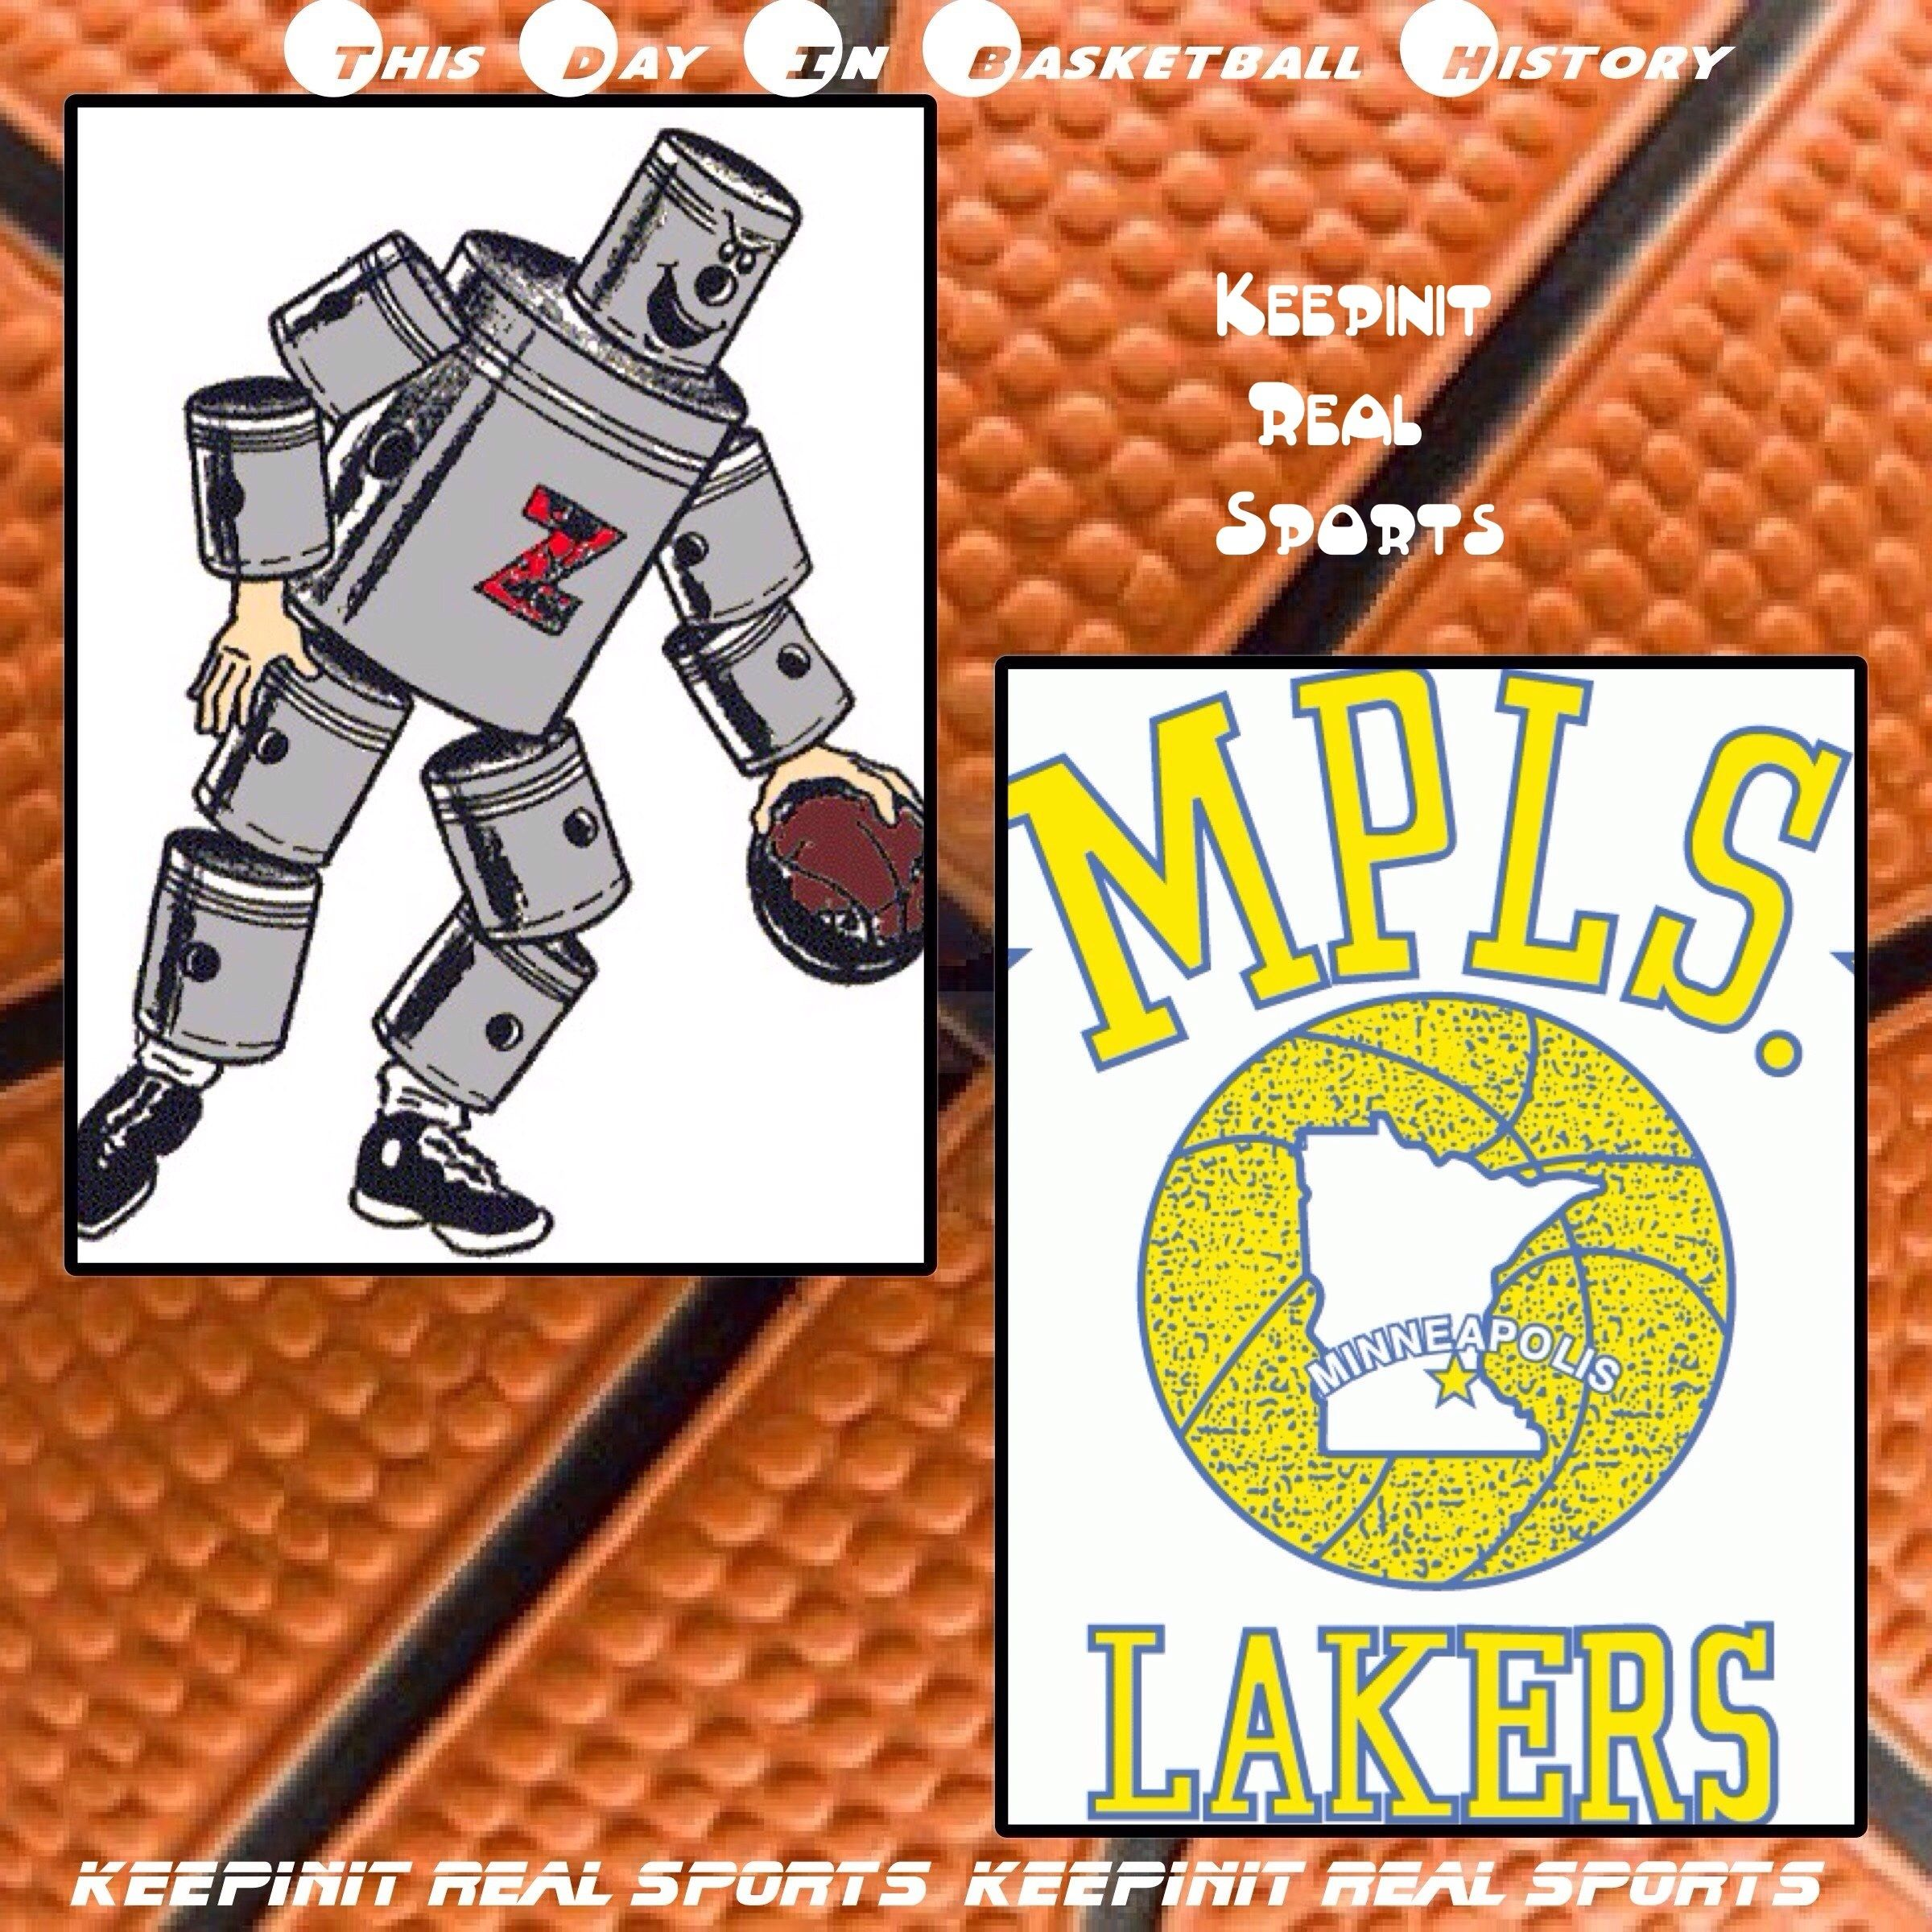 This Day In Basketball History November 22 1950 The Lowest Scoring Game In The Nba Was Played The Fort Wayne Pis Basketball History Detroit Pistons Lakers